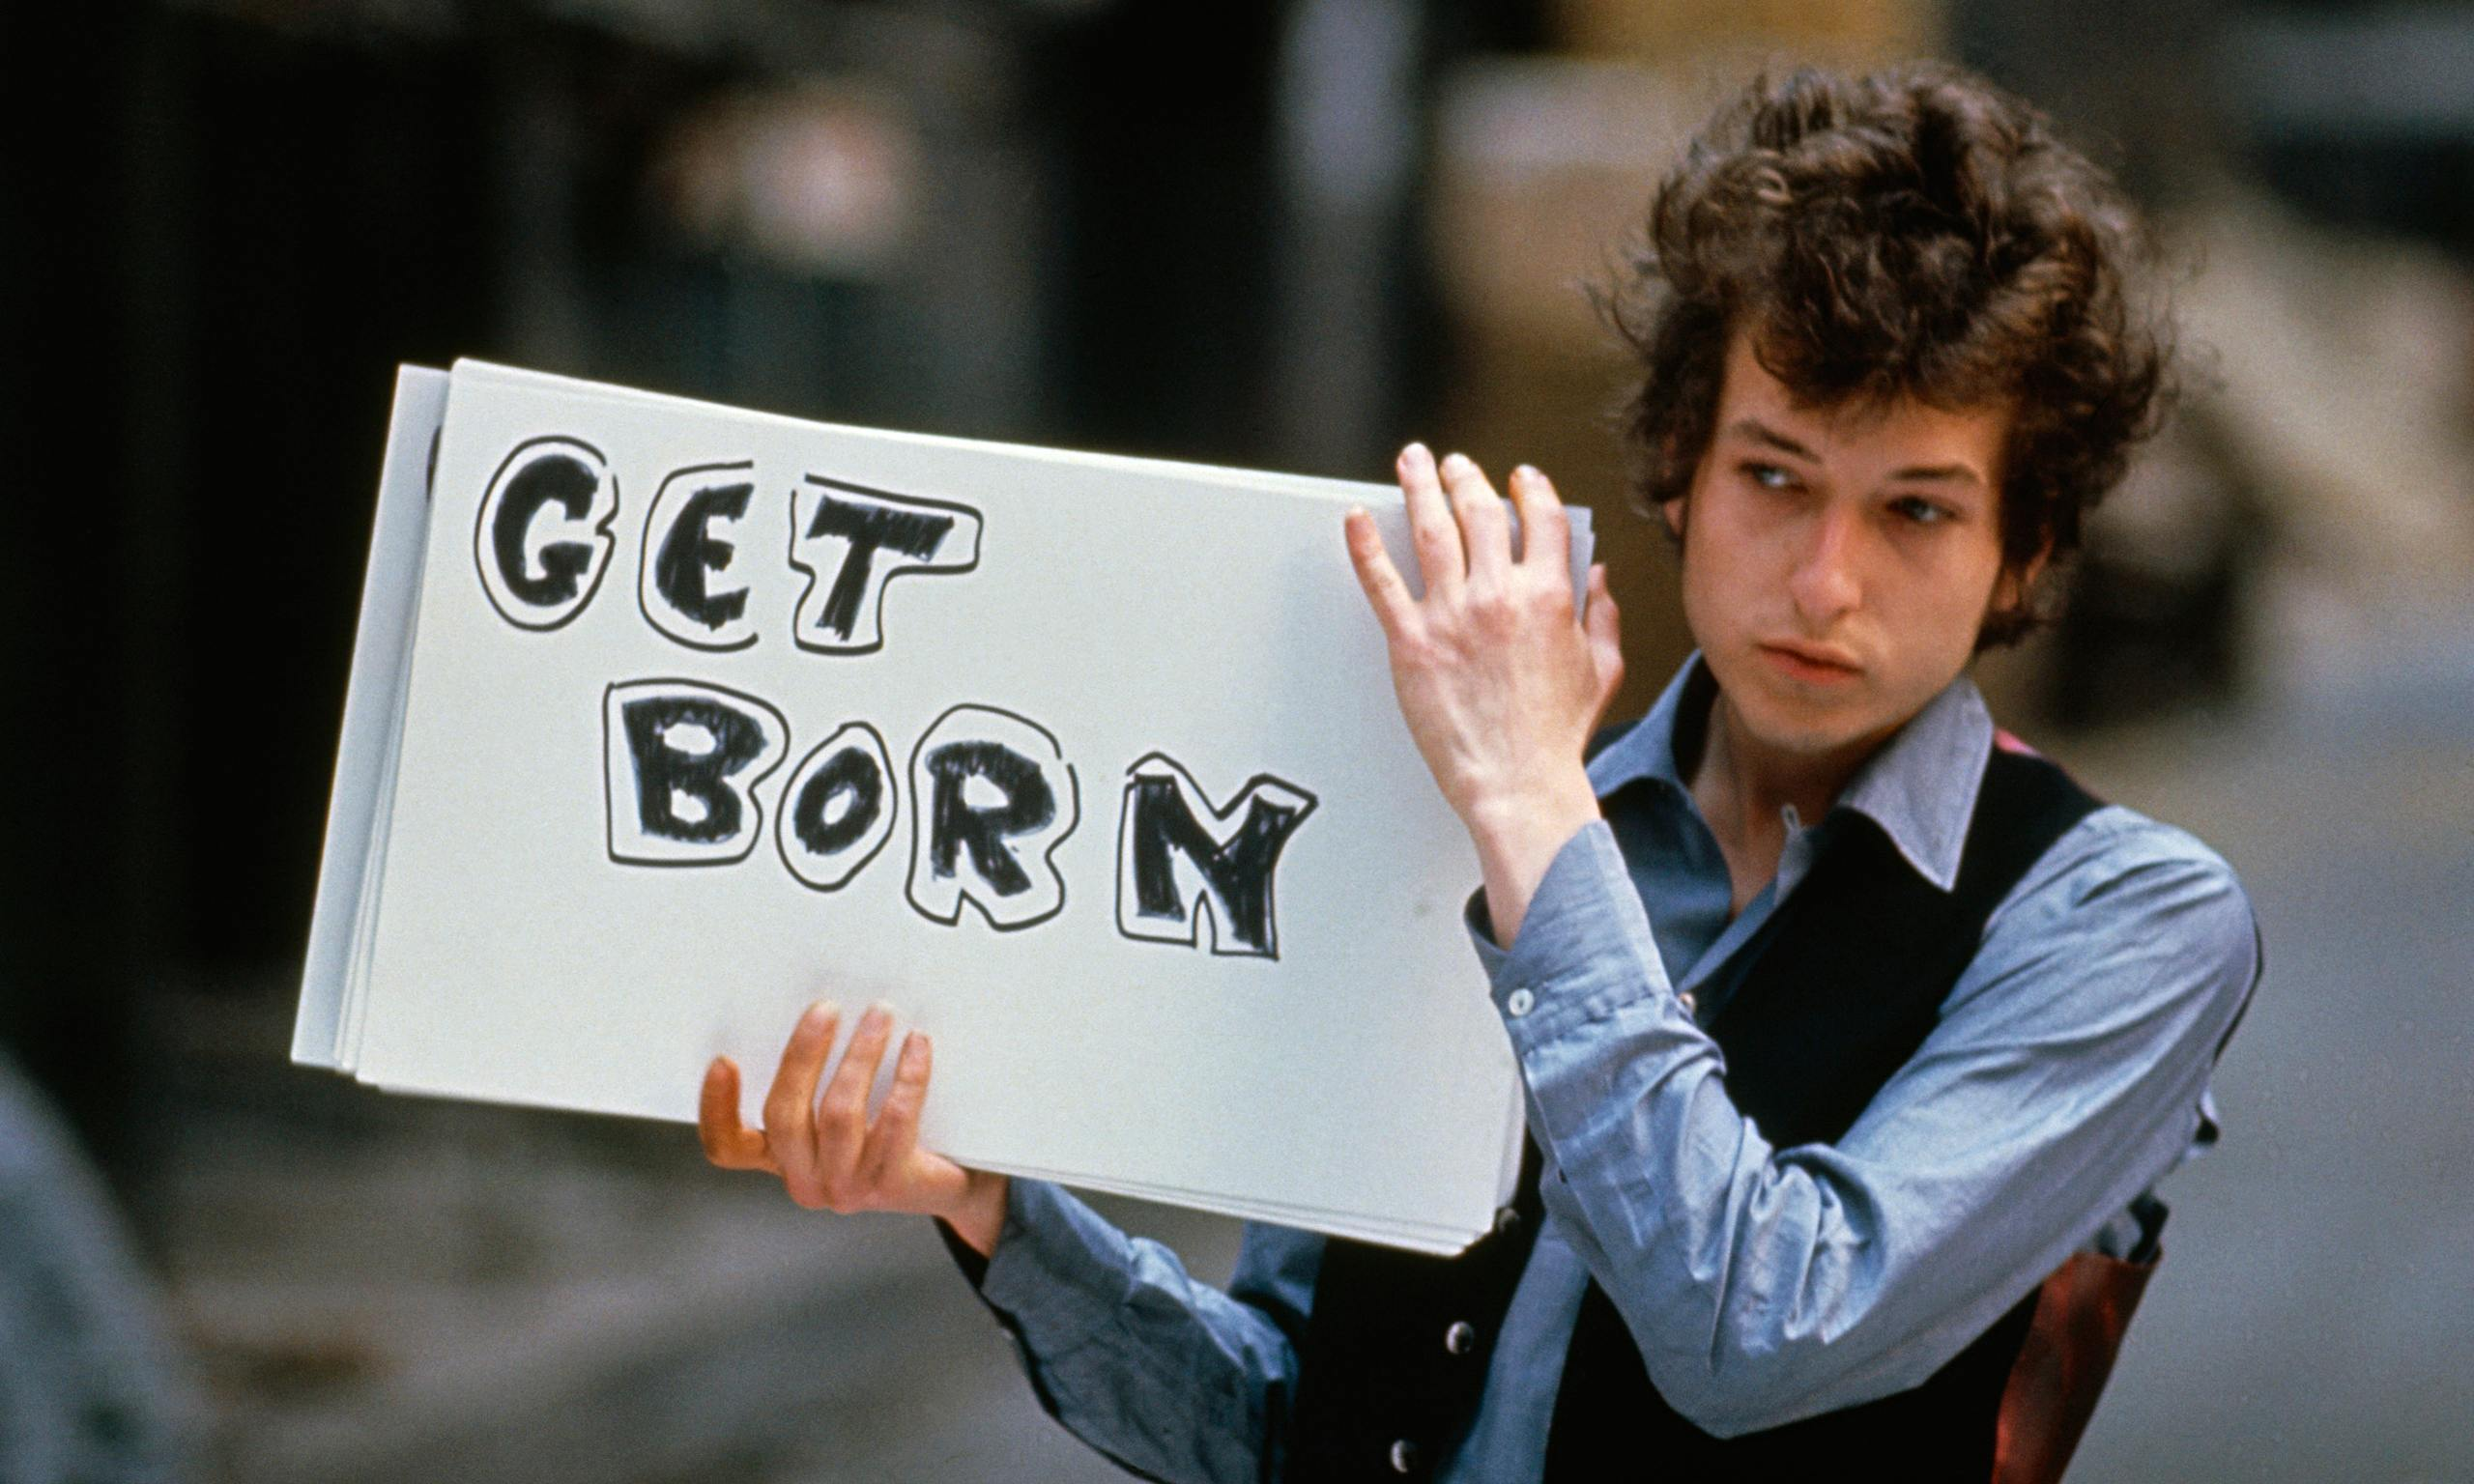 Bob dylan 1965 a picture from the past art and design for The dylan